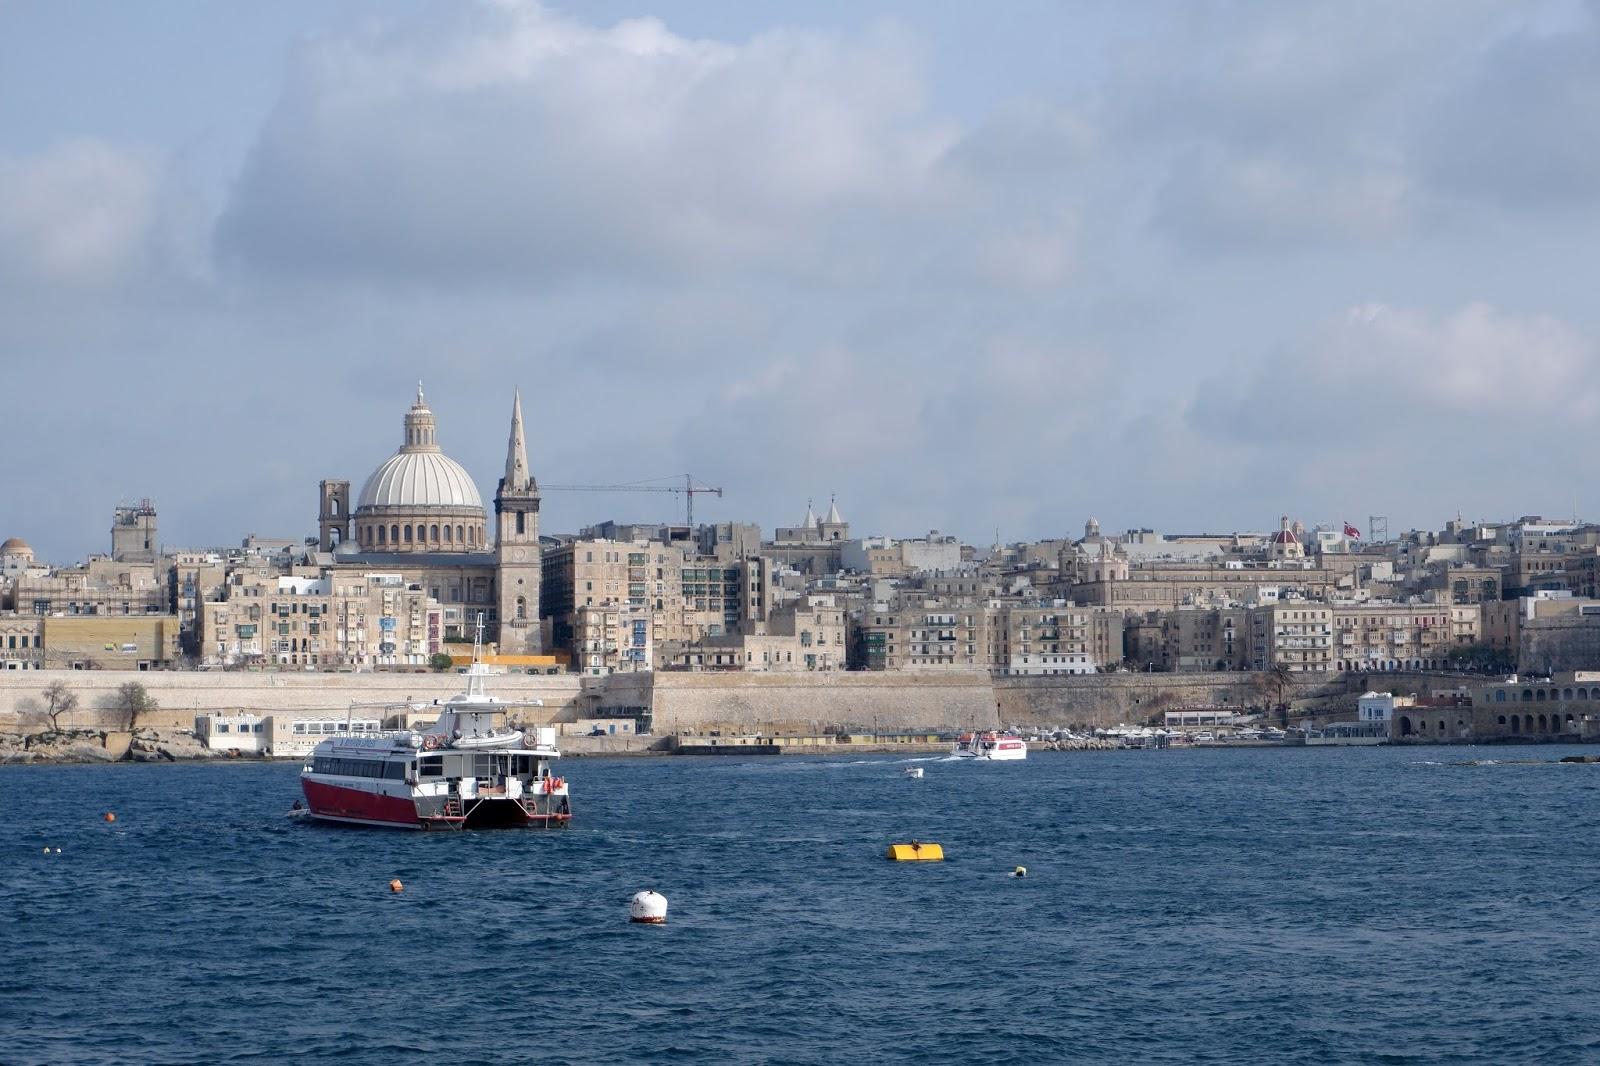 Views of the Maltese capital Valletta from Sliema Harbour, Malta